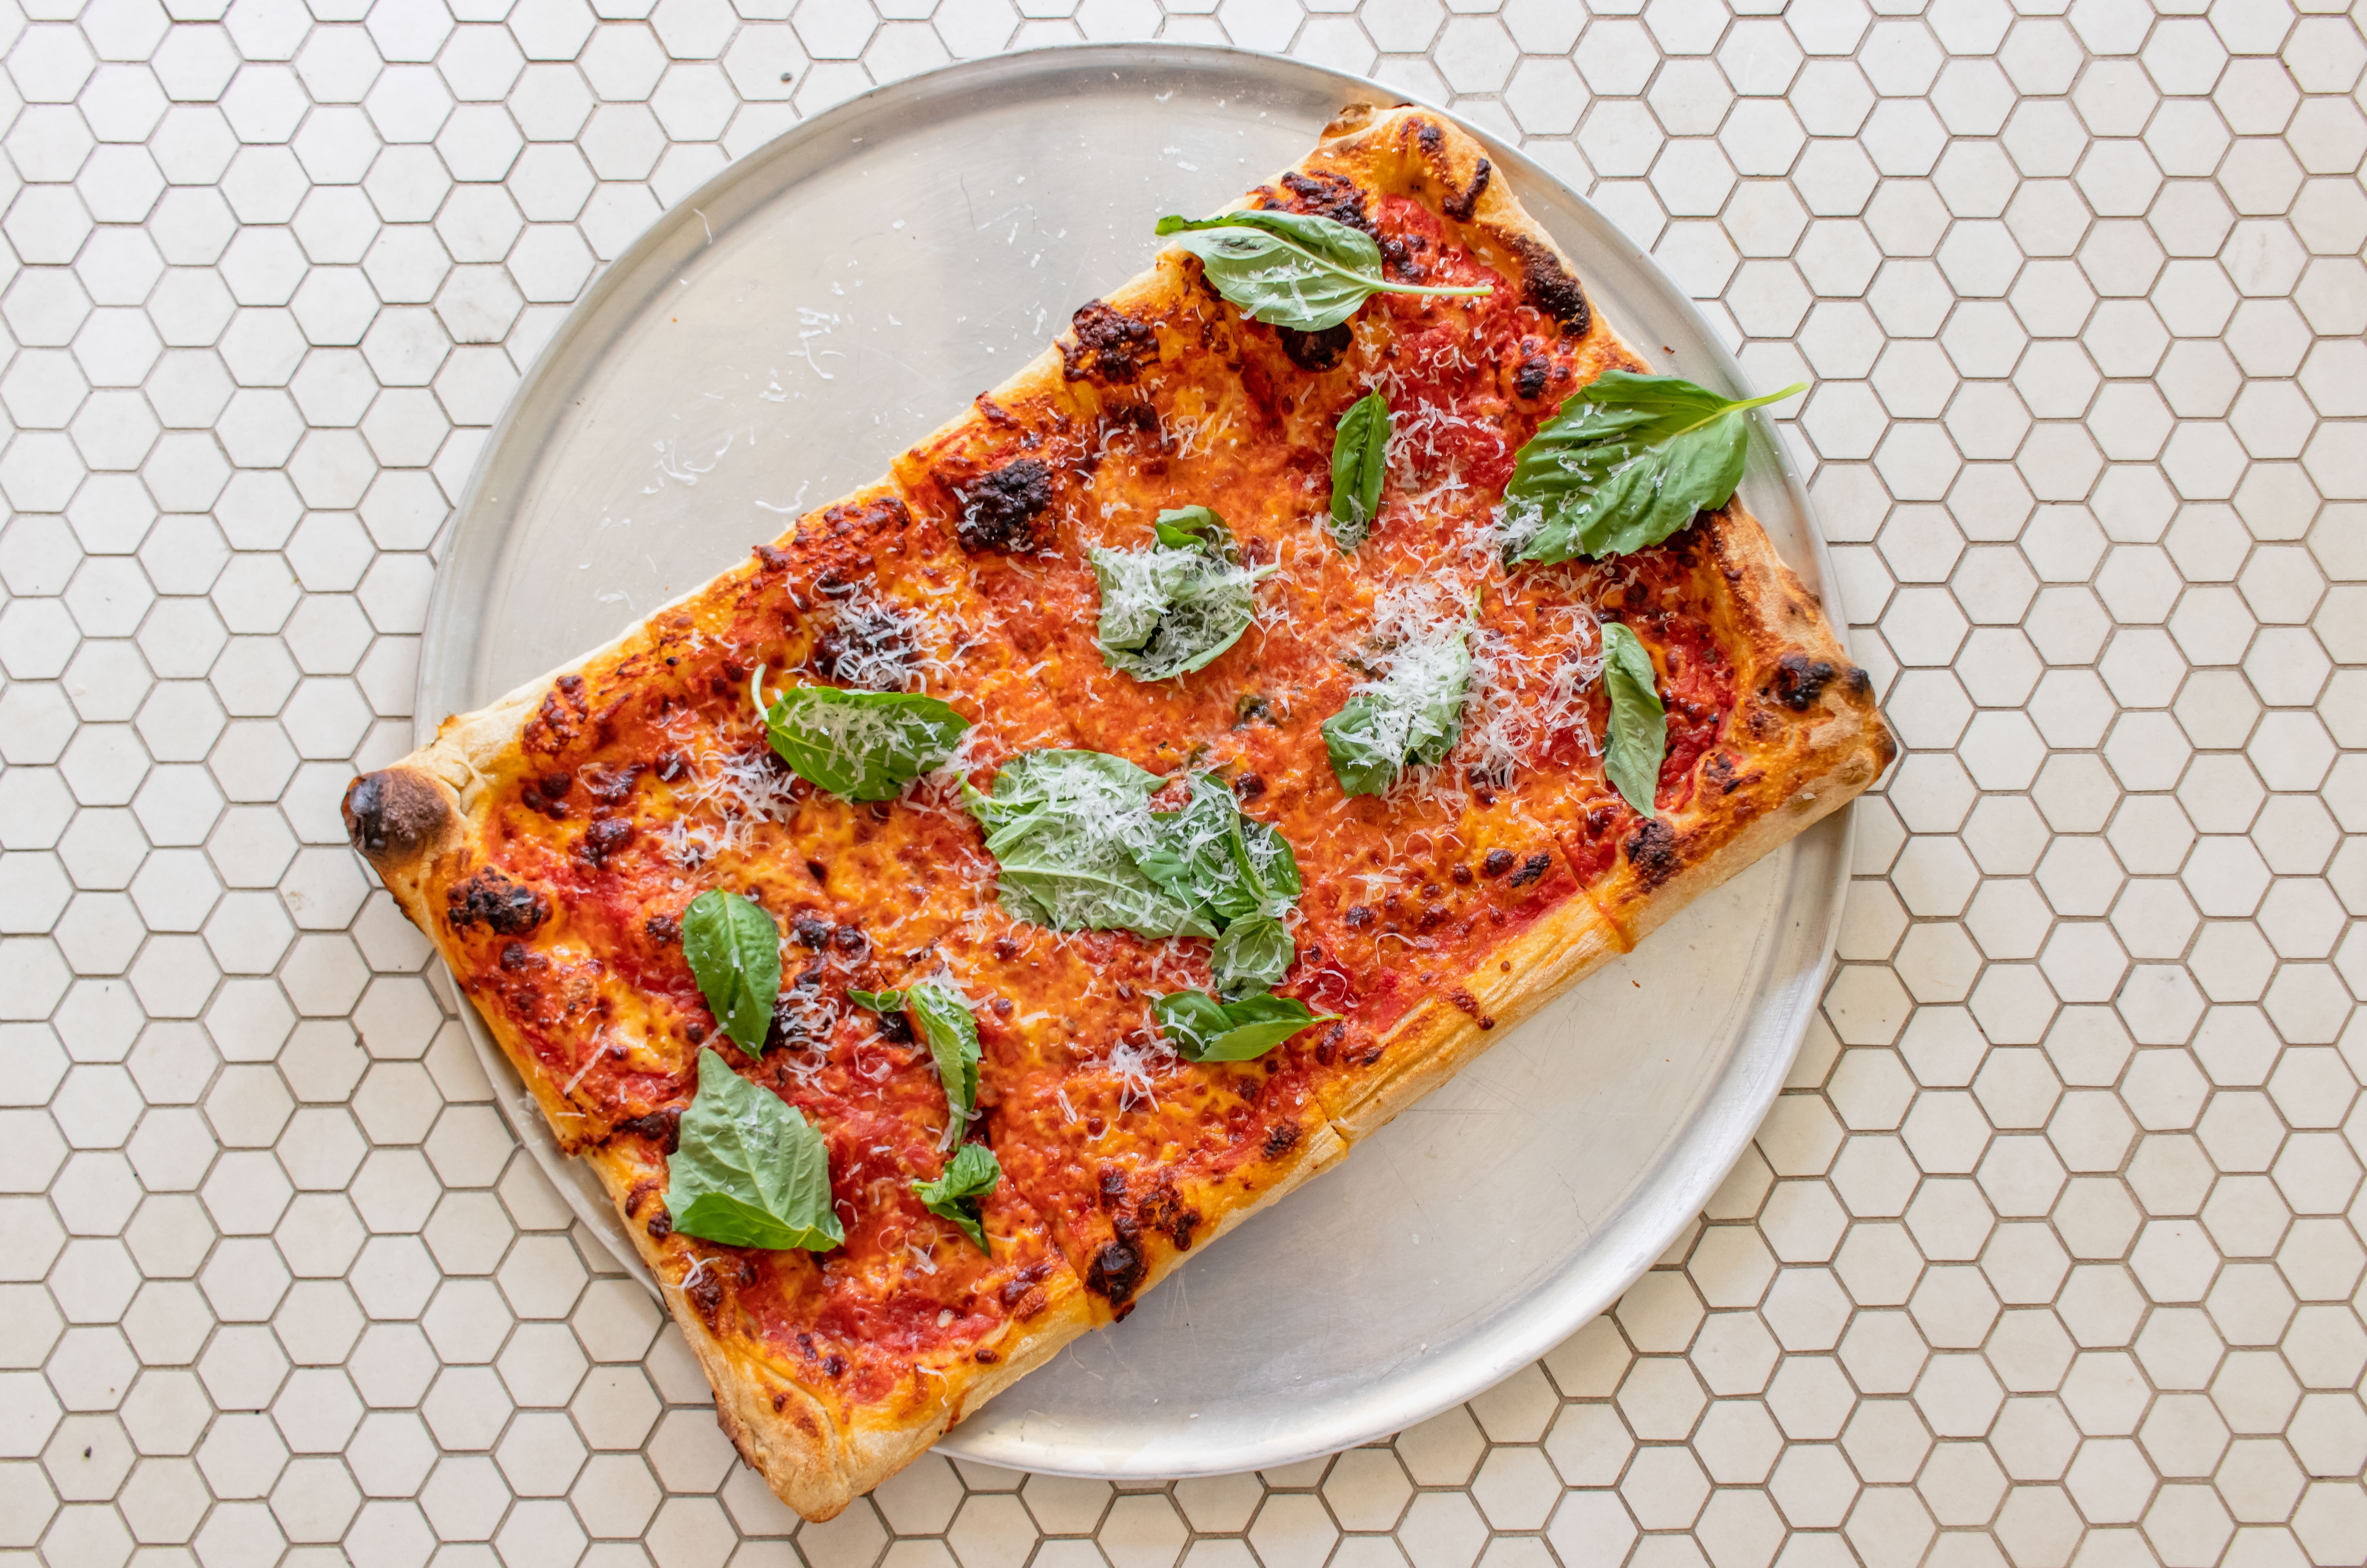 An overhead photograph of a square margherita pizza on a stainless steel tray.